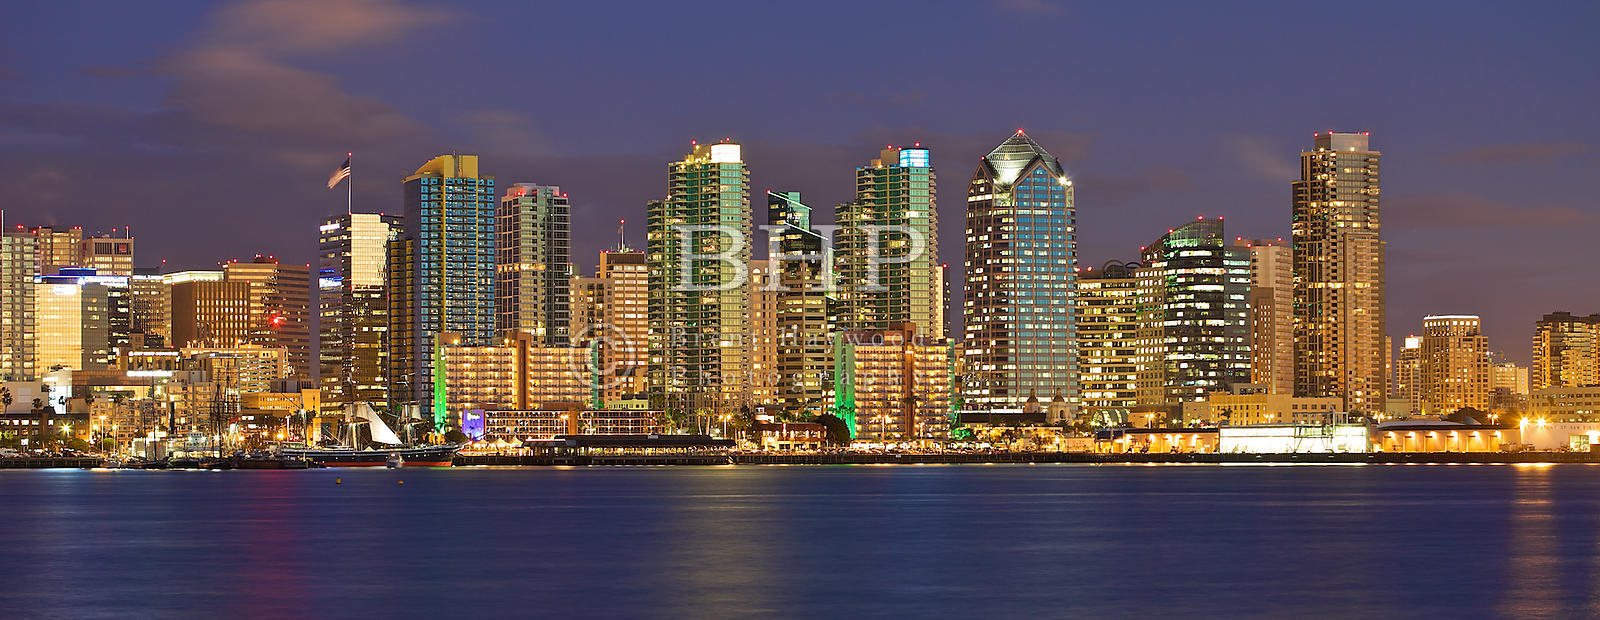 Brent Haywood Photography Downtown San Diego Skyline Sunset Photo